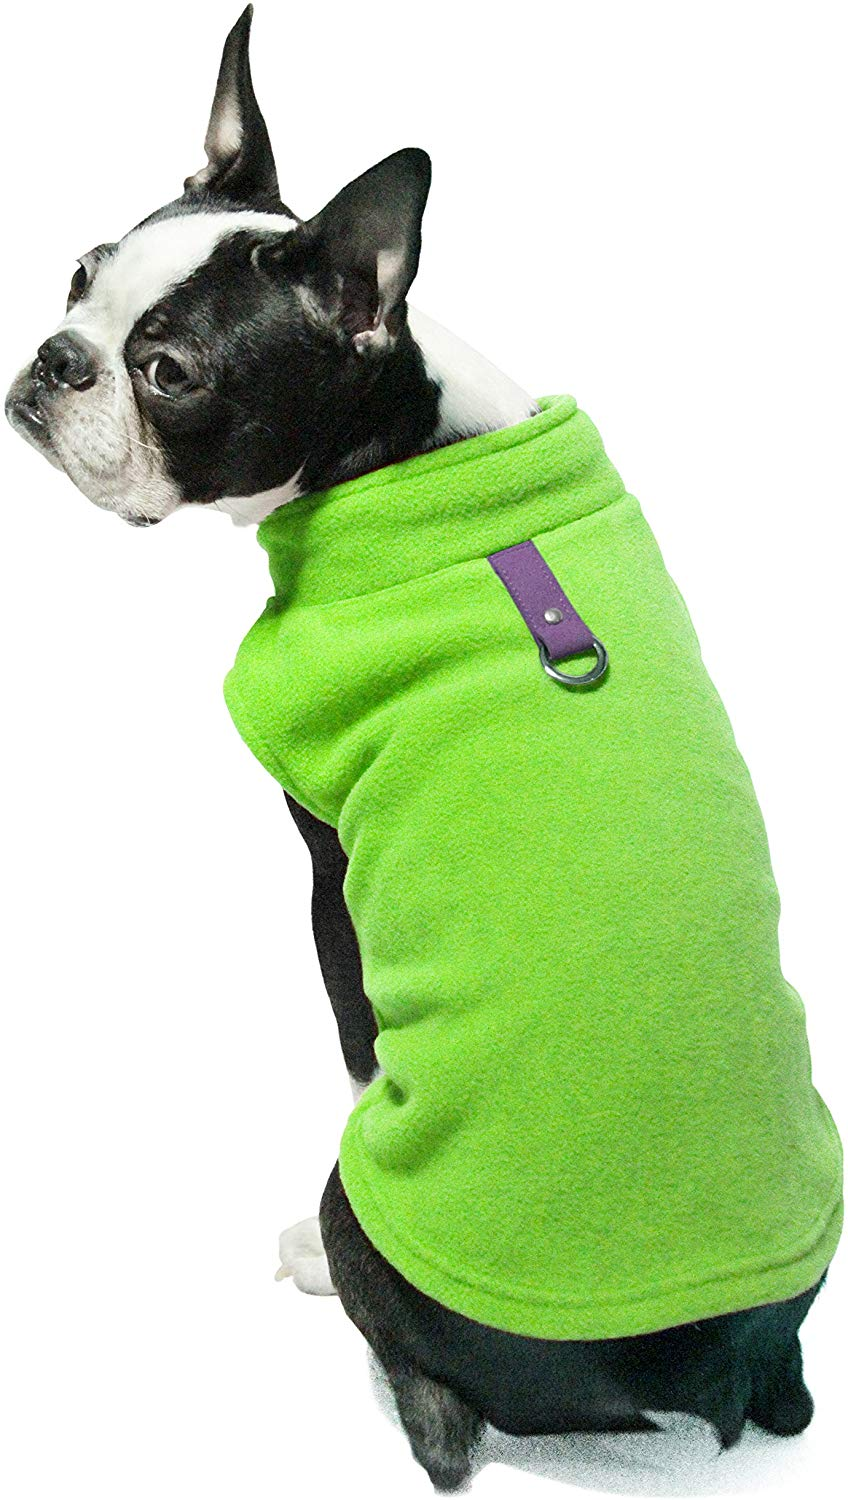 Gooby - Fleece Vest, Small Dog Pullover Fleece Jacket with Leash Ring - Medium Green $3.54 or Large Pink $4.08 at Amazon